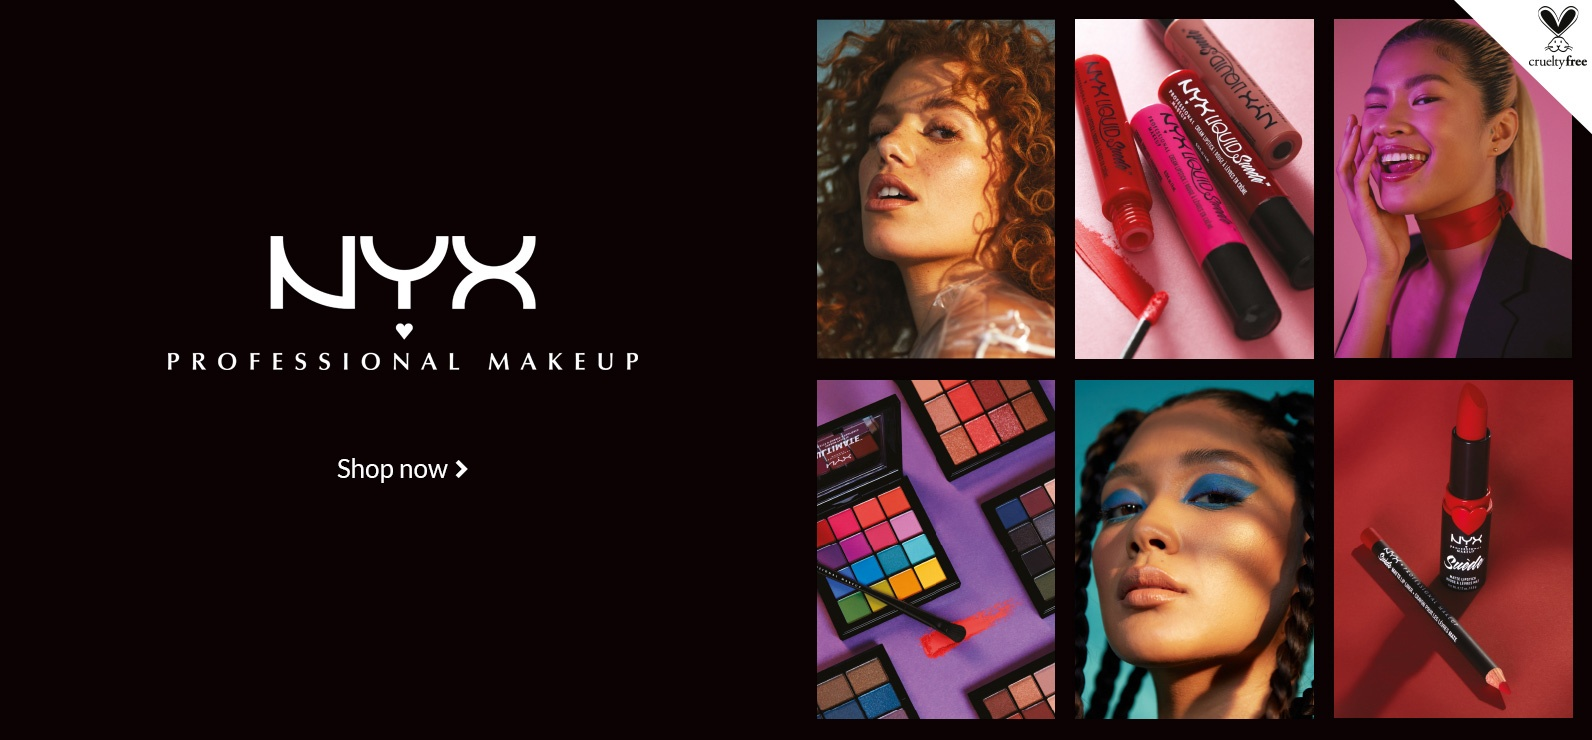 Learn more about NYX Professional Makeup